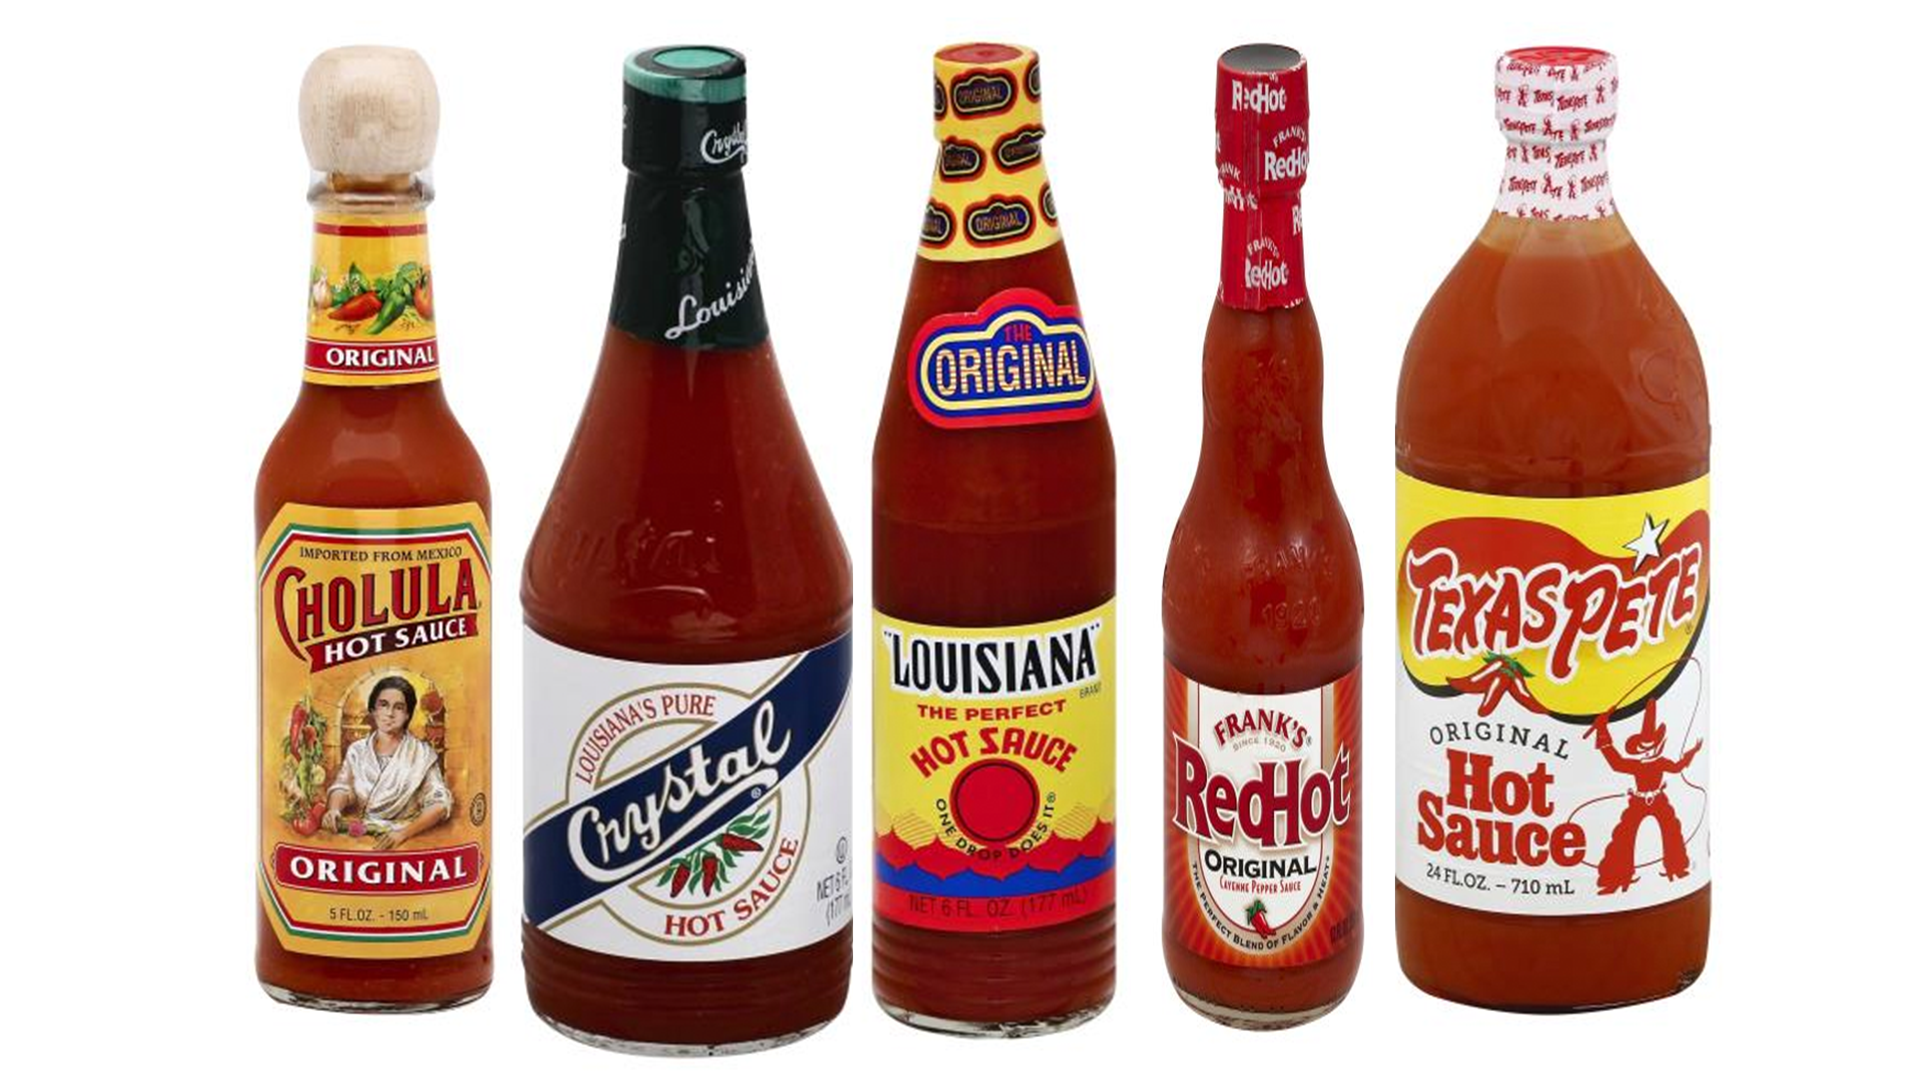 We Blind Taste-Tested 5 Popular Hot Sauces, And This Was Our Favorite